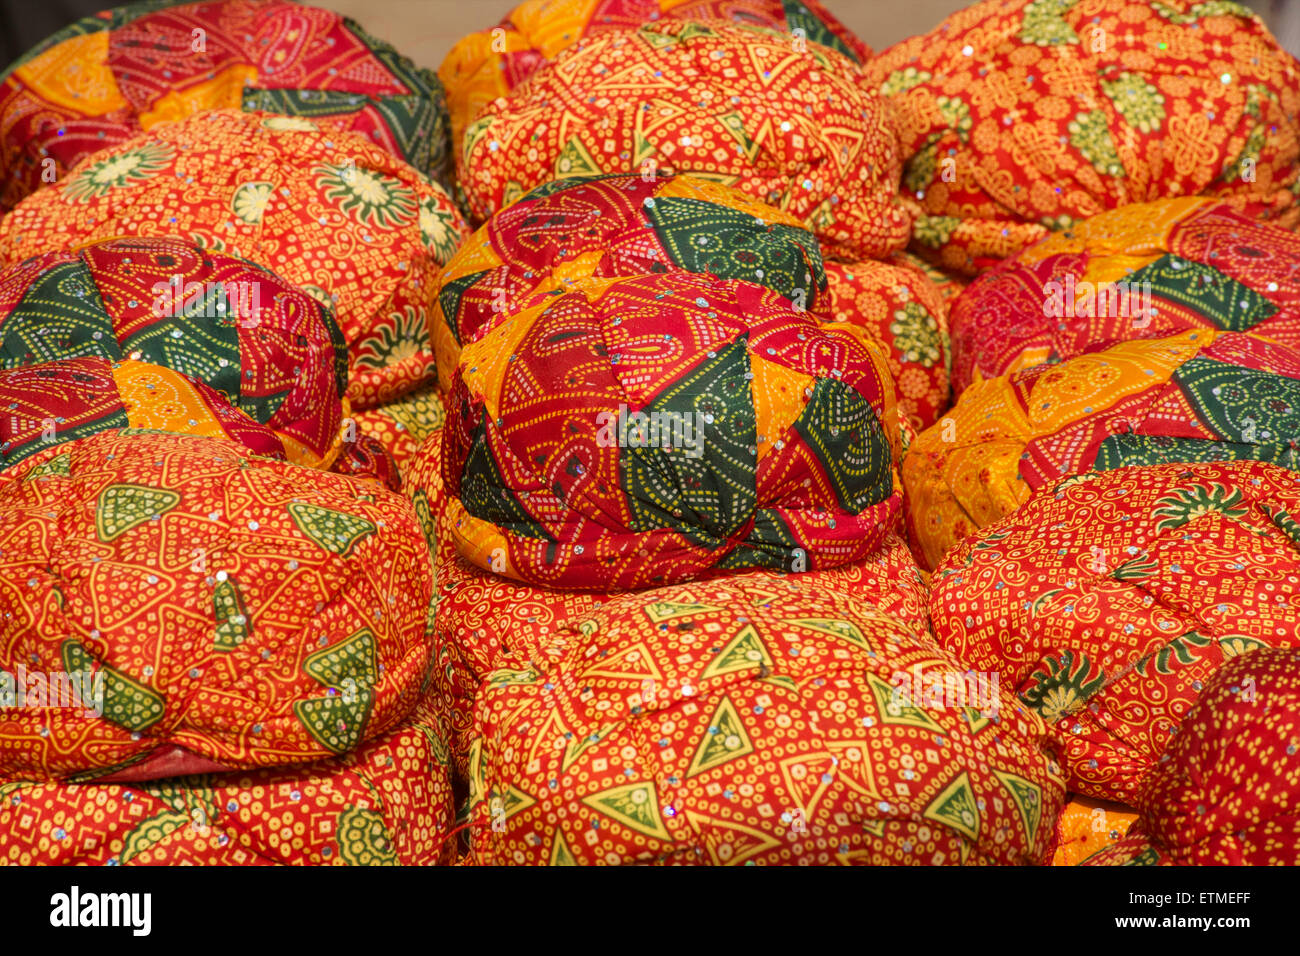 Hats of Indian fabric for sale n Jaisalmer,   Rajasthan, India - Stock Image